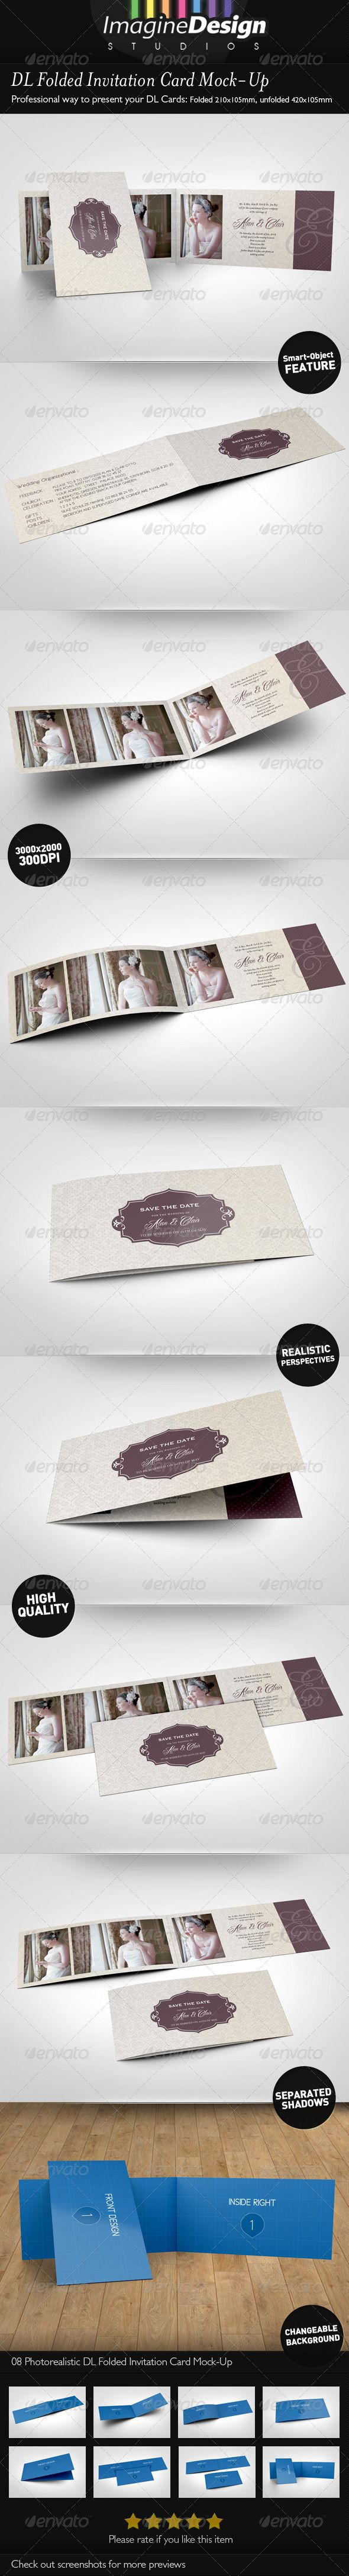 DL Folded Invitation Card MockUp Mockup Wedding invitation card